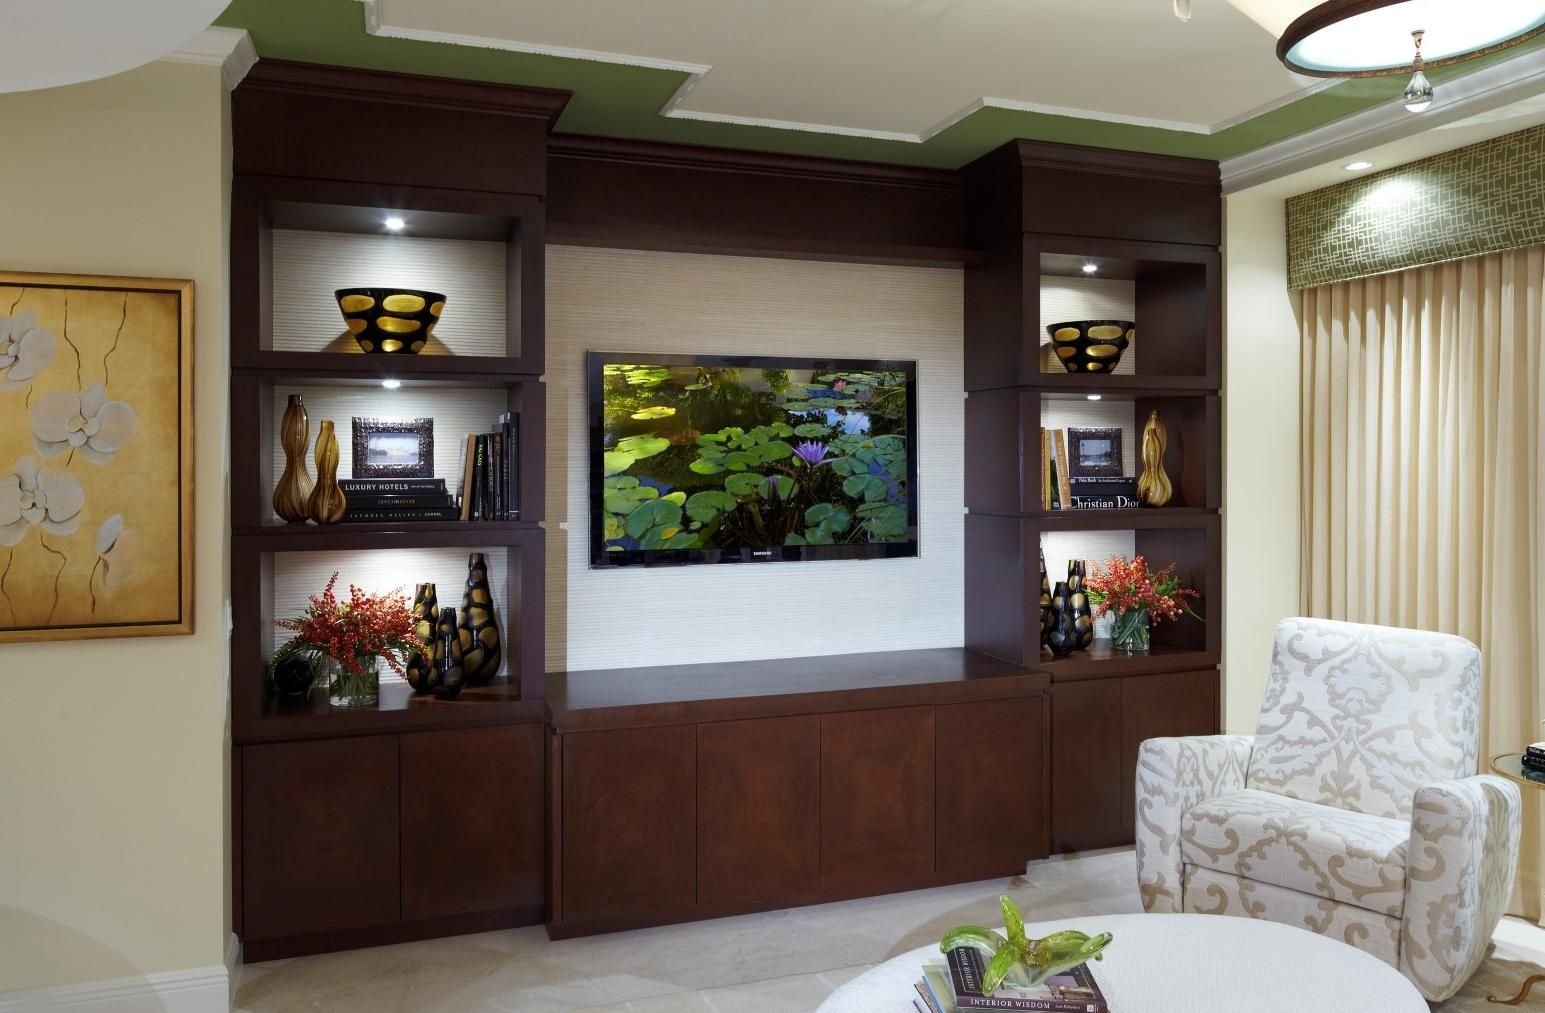 Living Room Entertainment Center Ideas  Google Search  Ideas For Prepossessing Simple Living Room Furniture Designs 2018